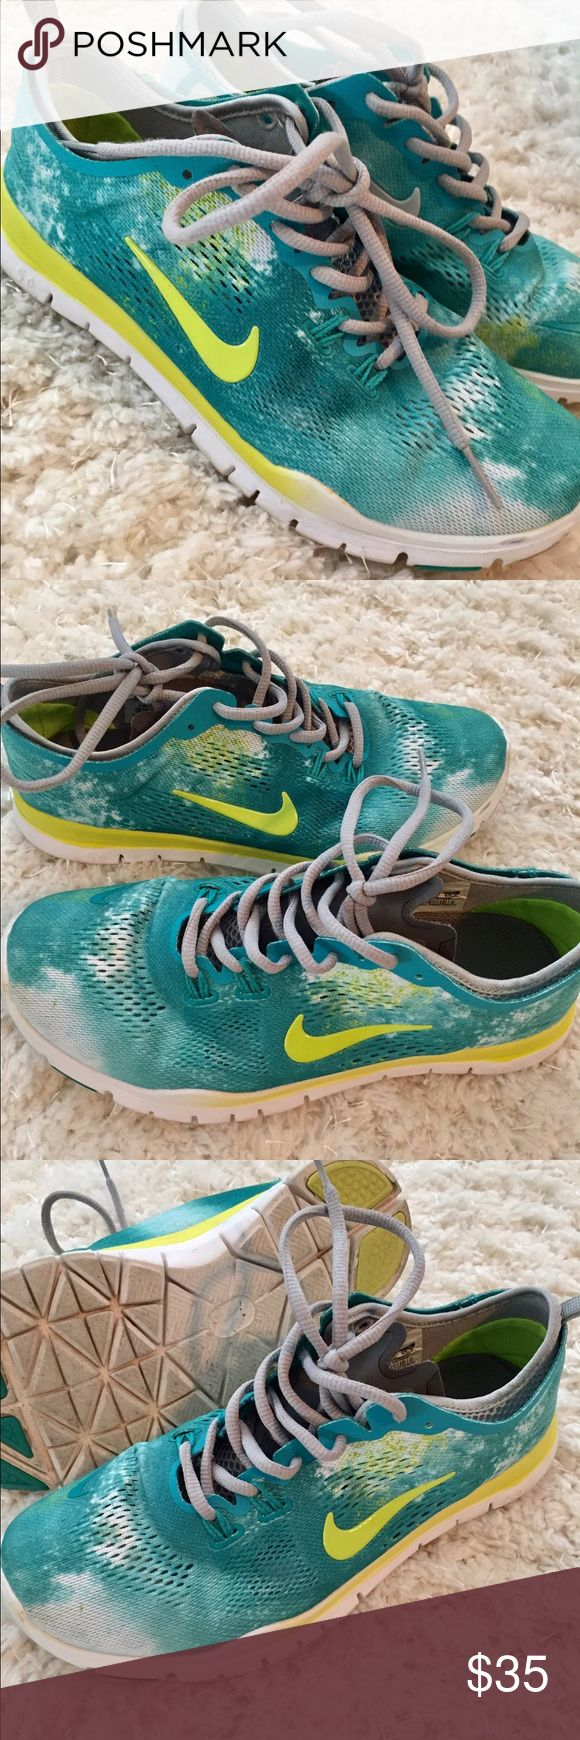 Nike free 5.0 teal neon green galaxy 8.5 Nike free 5.0 teal neon green galaxy 8.5 tennis shoes. Gently loved. Shipped from smoke free home. Nike Shoes Sneakers